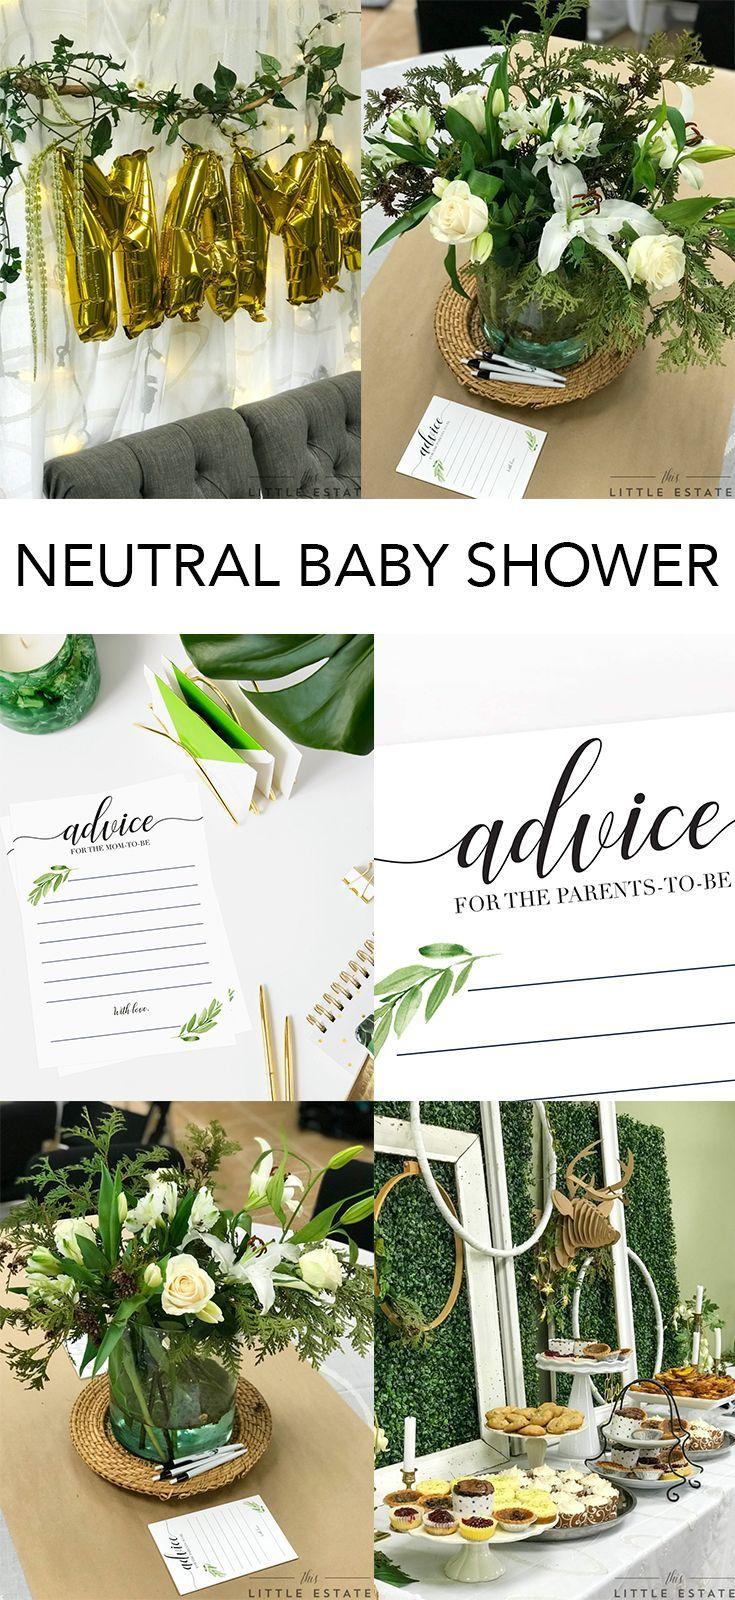 Neutral baby shower games by LittleSizzle. Are you hosting a neutral baby shower? Entertain your guests with these gorgeous greenery themed baby shower games. They are perfect for any botanical green baby shower. The printable baby shower game package includes advice cards for the mom-to-be or parents-to-be, baby wishes cards, baby predictions, baby bingo, word scramble, nursery rhyme quiz and more! Simply download, print and play! #babyshowerideas #babyshowerthemes #greenery #botanical…